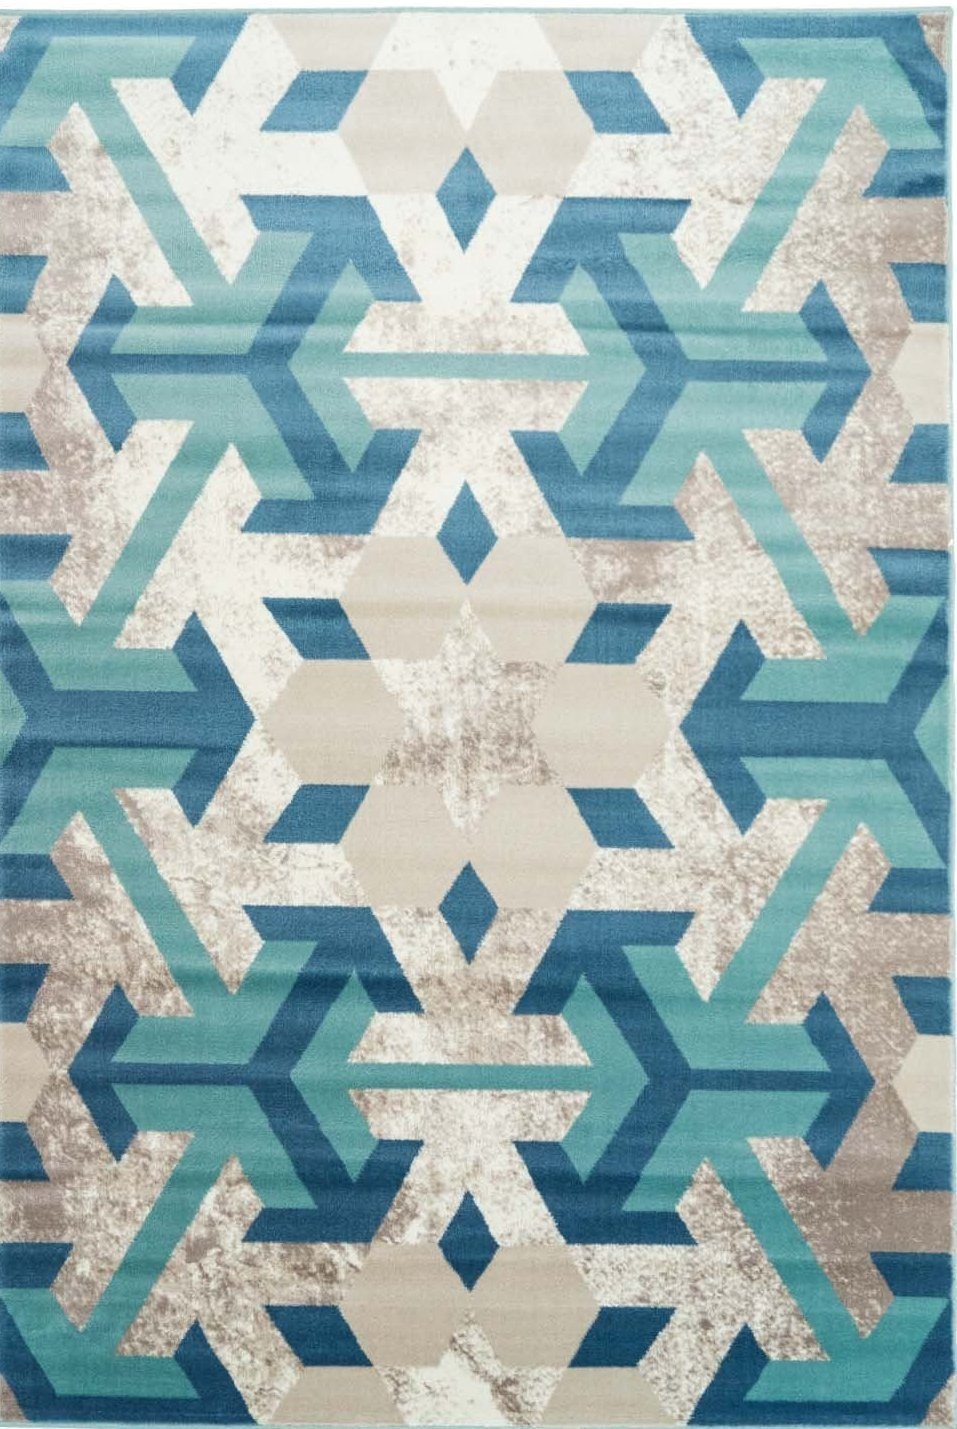 Irish Teal Turquoise Snowflake Area Rug -